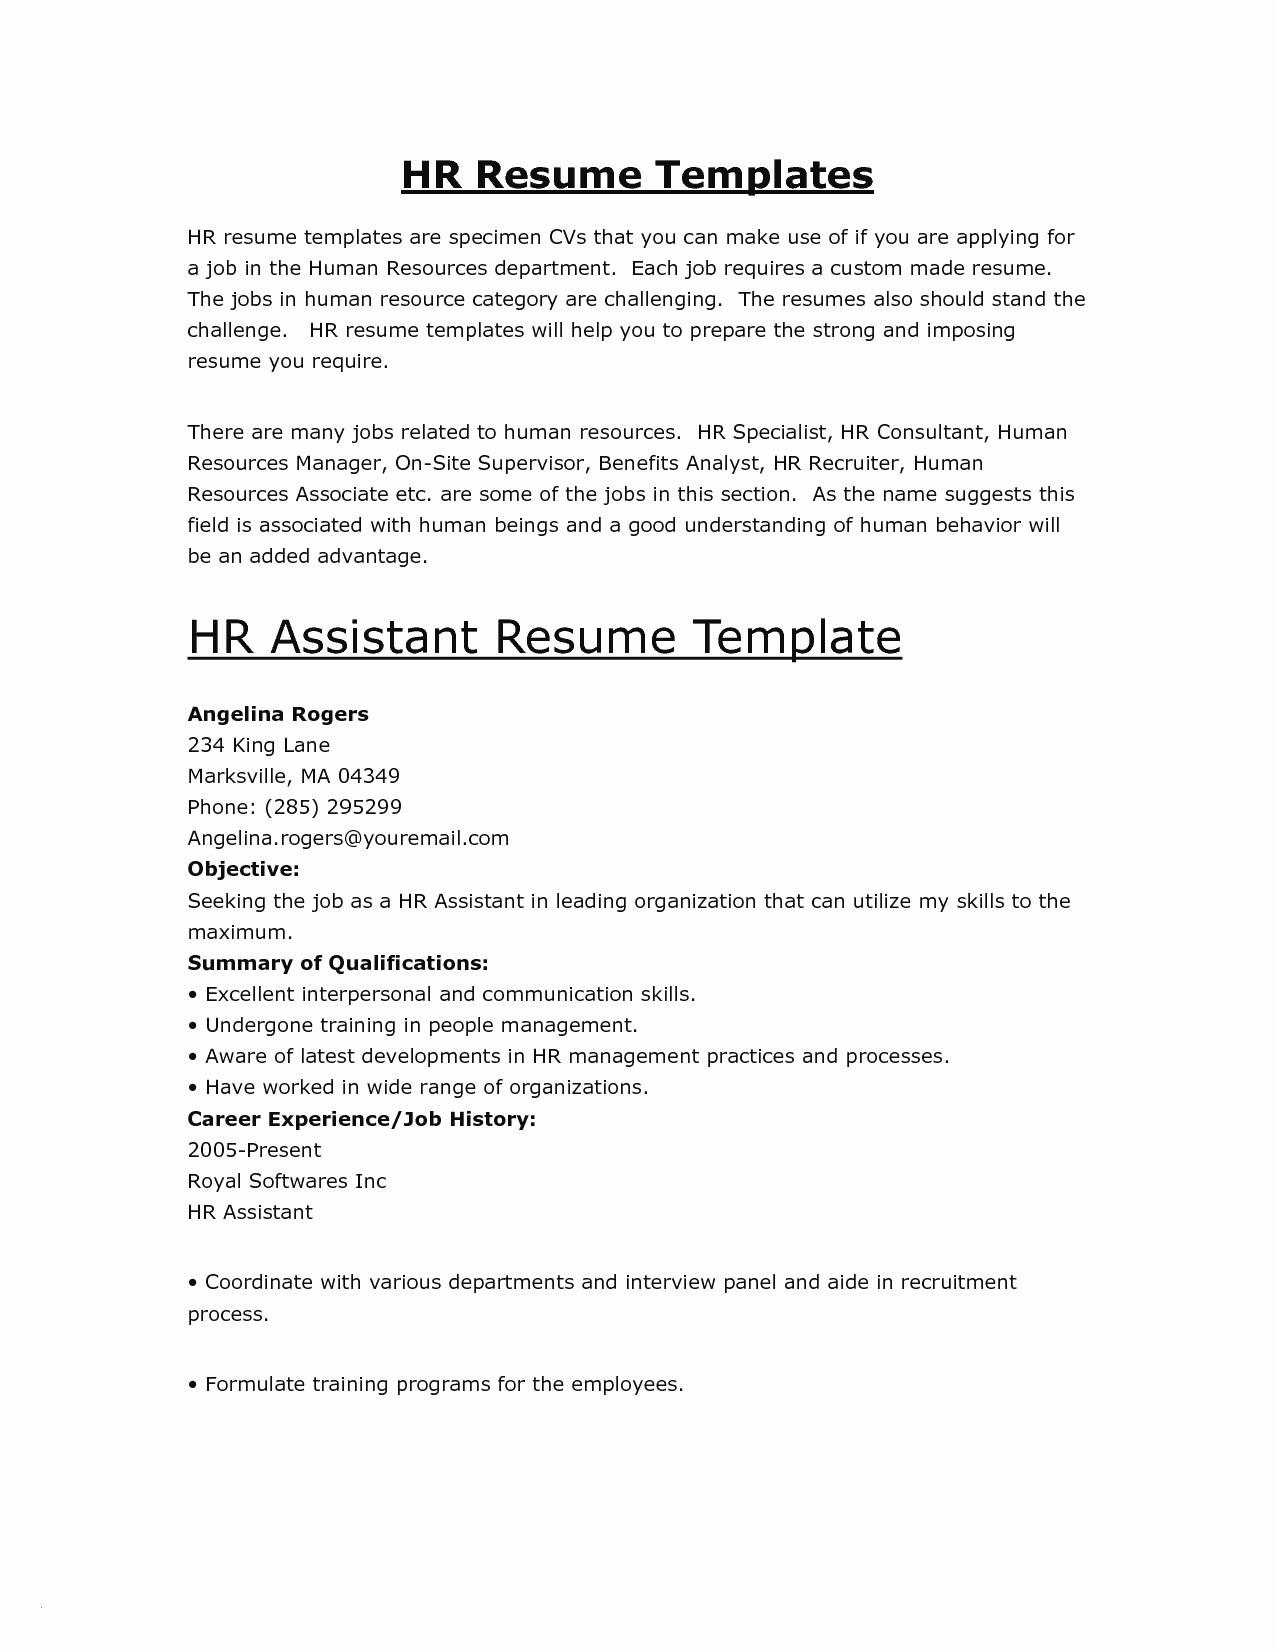 cover letter for acting role - Erha.yasamayolver.com